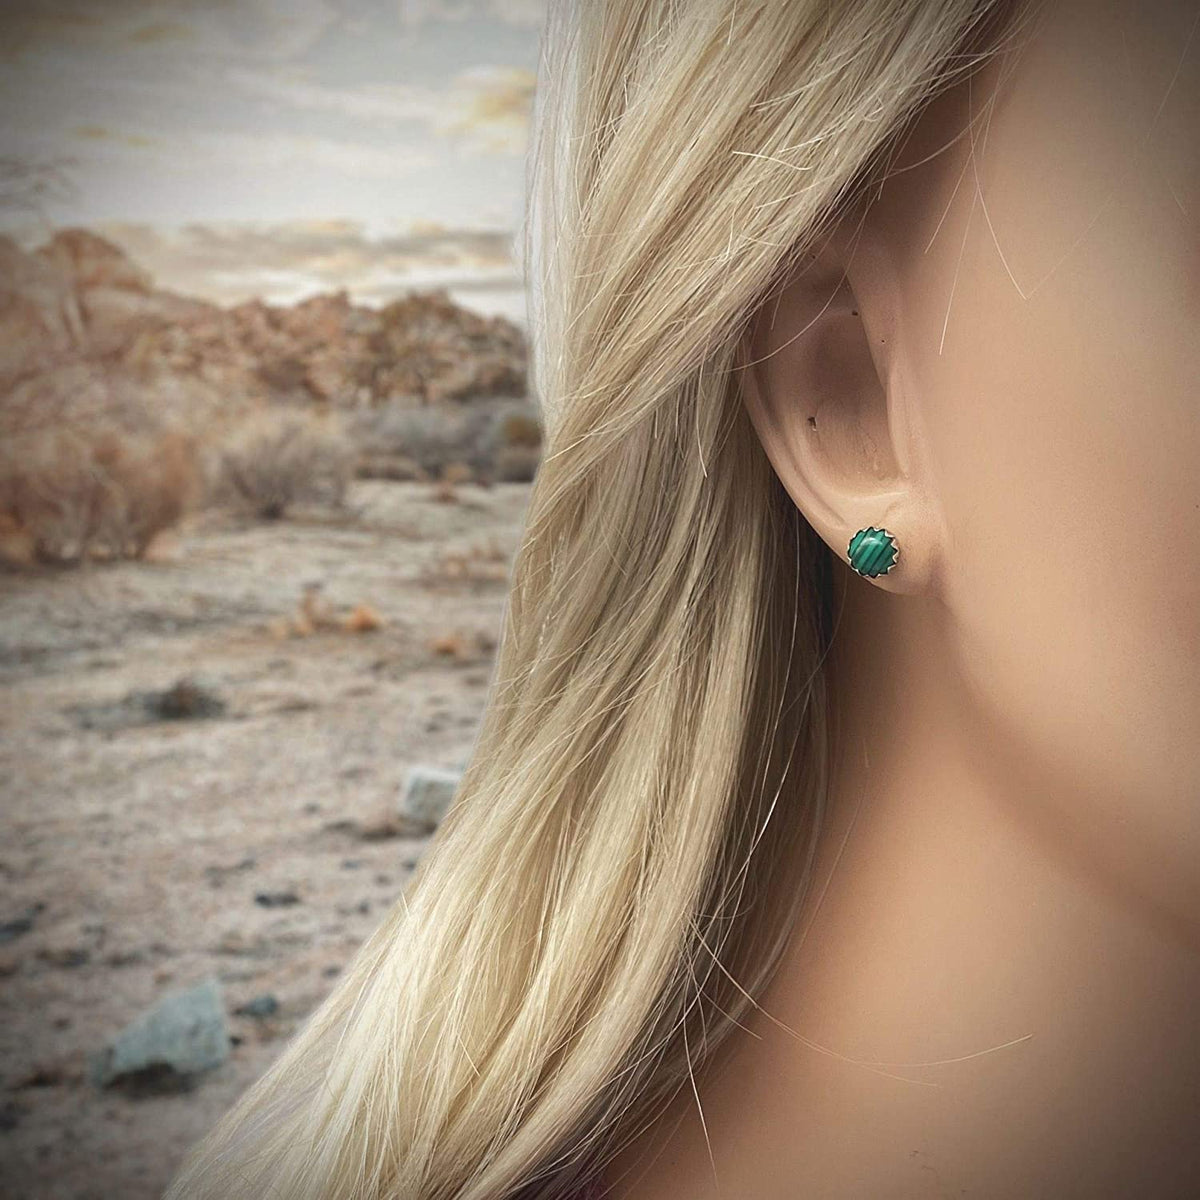 6mm Genuine Malachite Stud Earrings in 925 Sterling Silver, Native American Handmade in the USA, Nickle Free, Dark Green